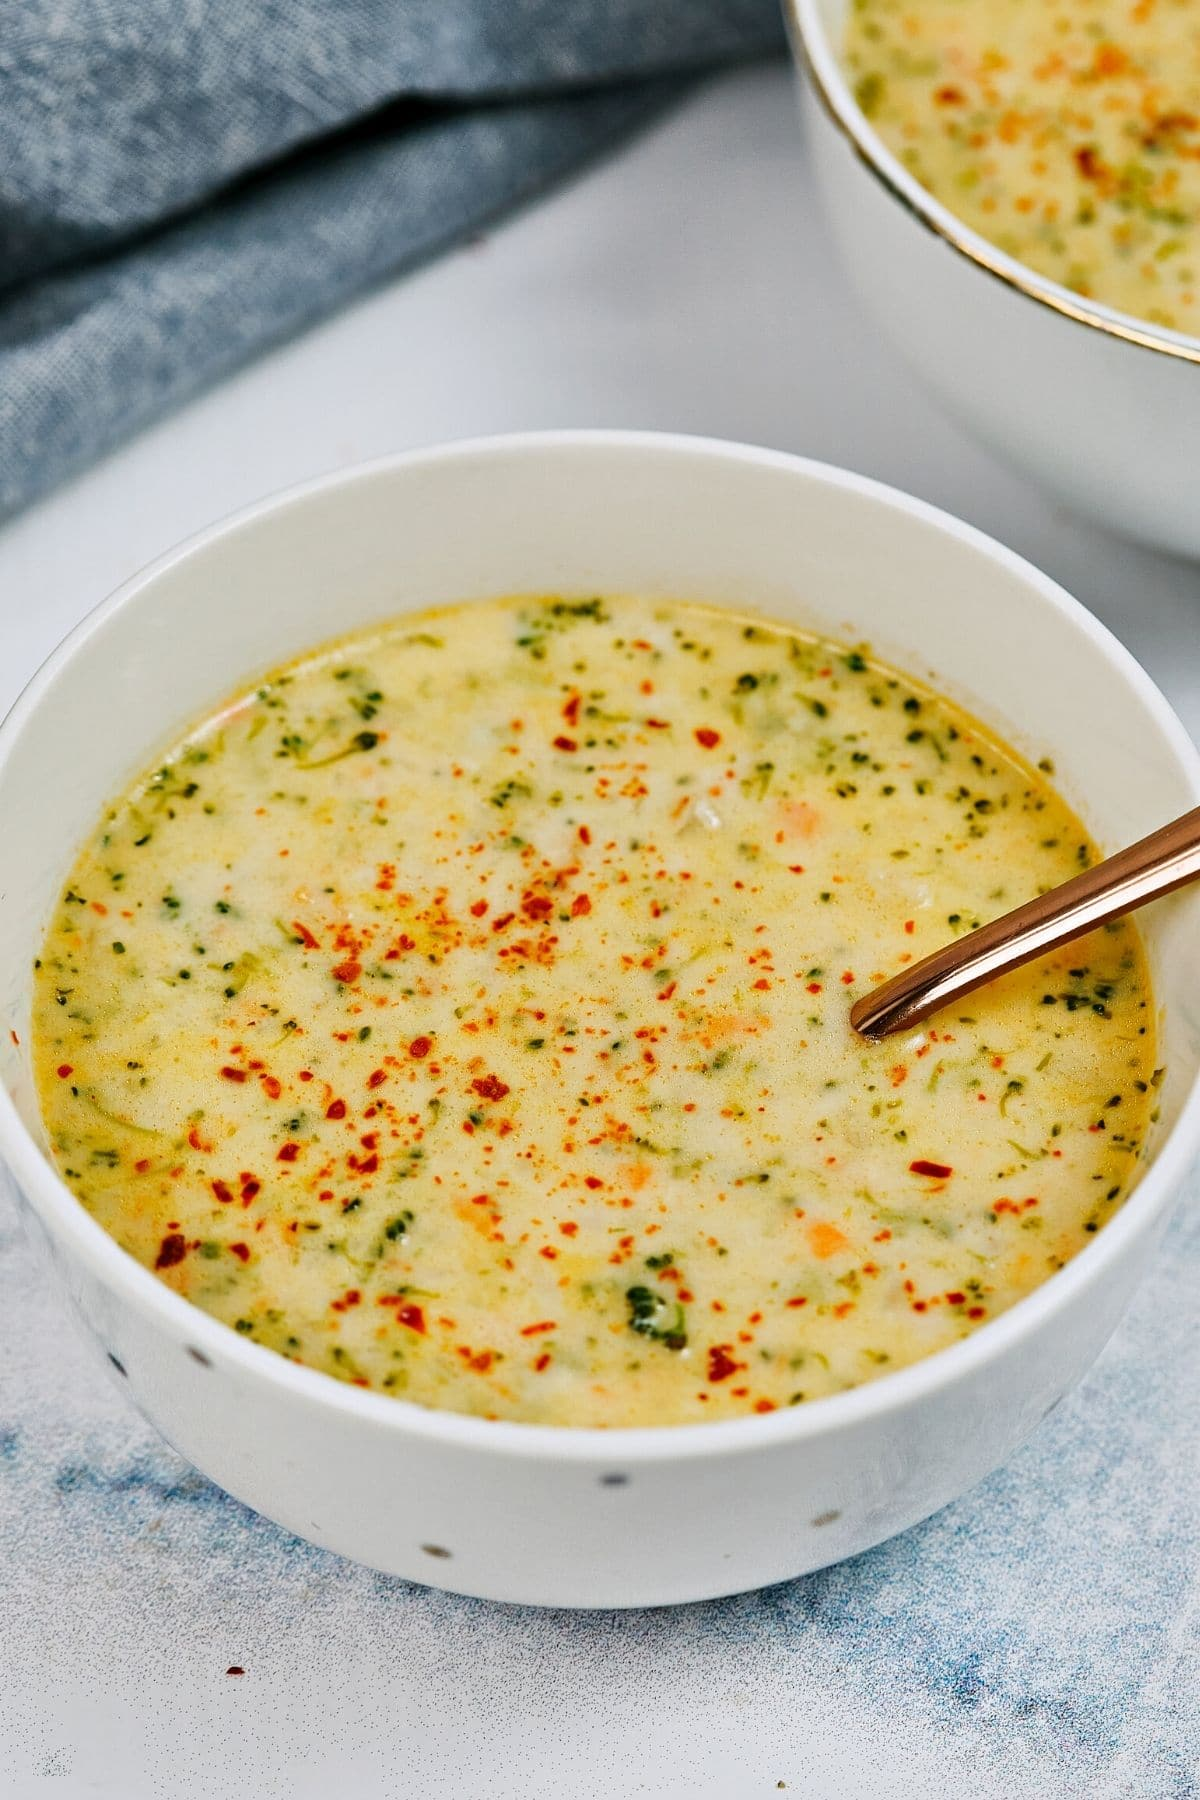 Two white bowls of broccoli soup on white table